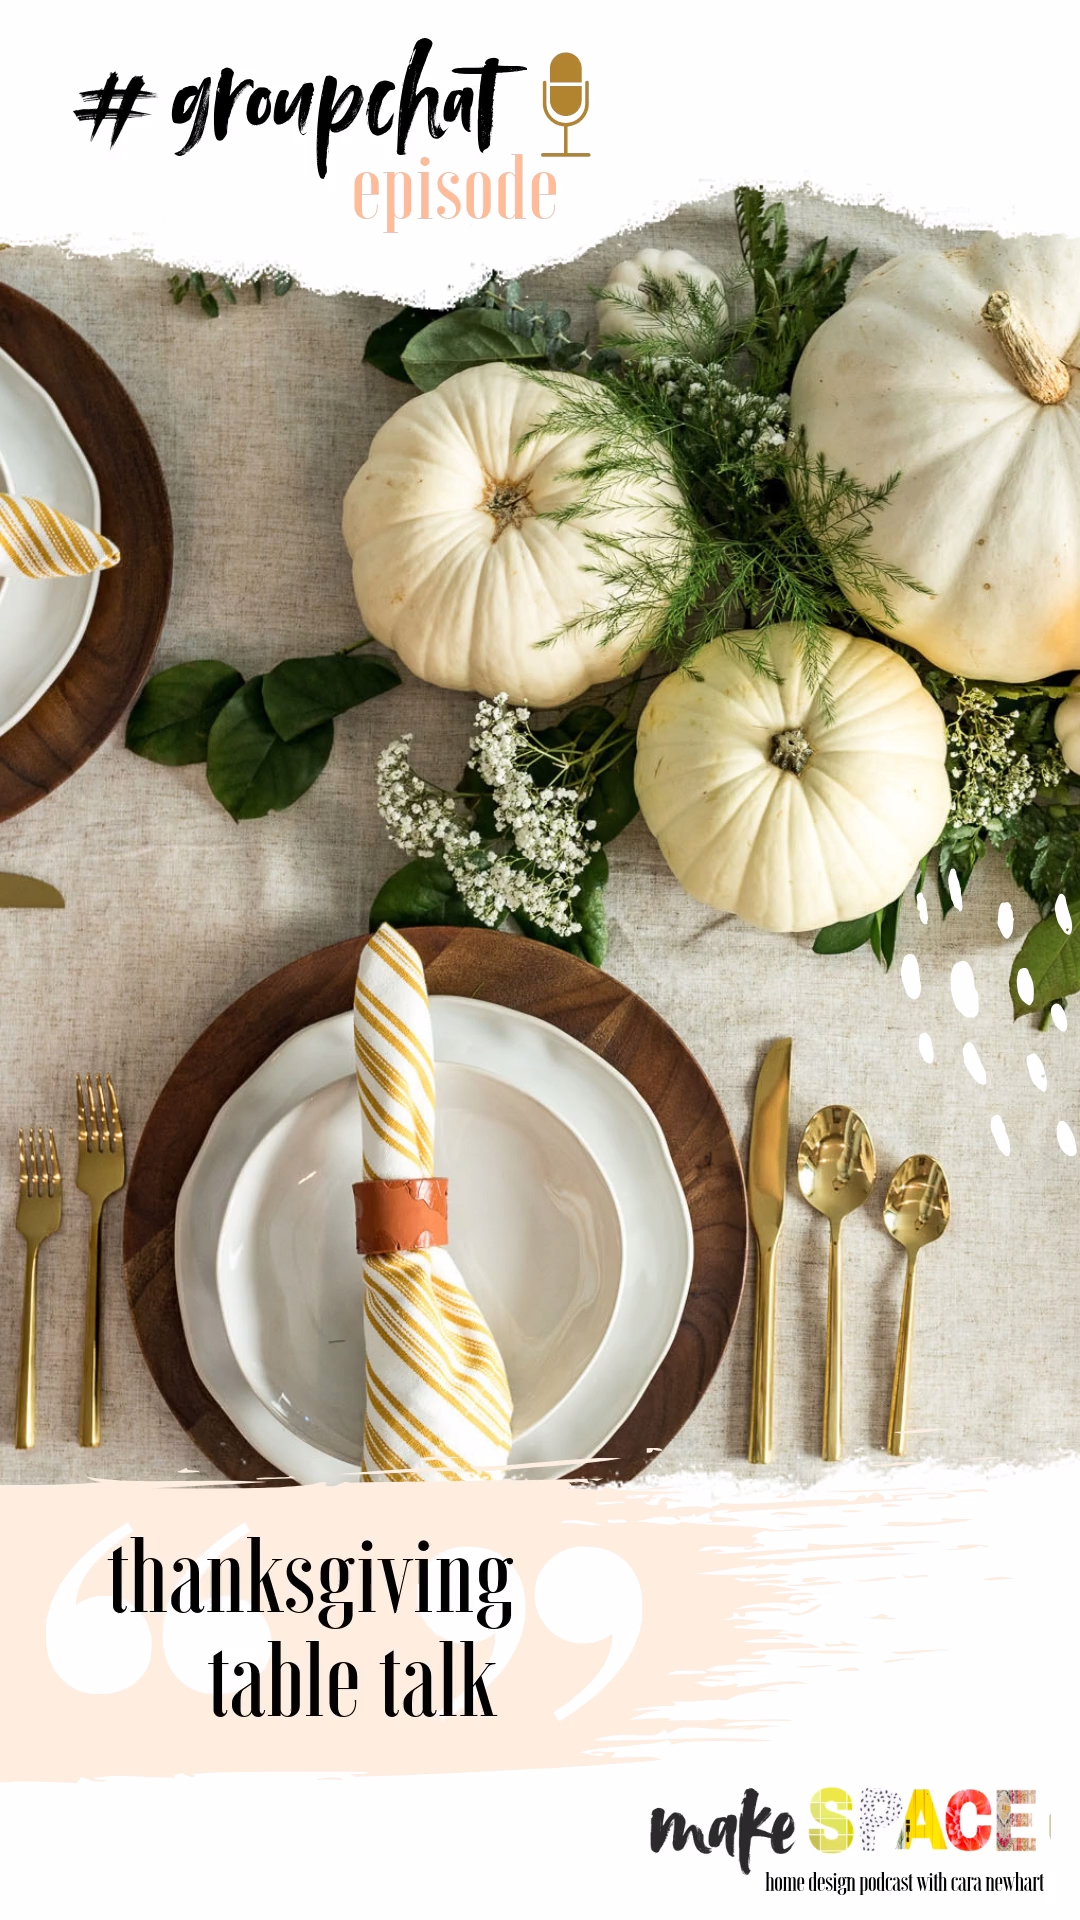 ???? — Thanksgiving Table Talk // Make Space — home design podcast // Thanksgiving Table   thanksgiving table setting ideas   thanksgiving table decor   thanksgiving table ideas   thanksgiving table decorations   Table Settings videos #GROUPCHAT #thanksgivingtablesettingideas ???? — Thanksgiving Table Talk // Make Space — home design podcast // Thanksgiving Table   thanksgiving table setting ideas   thanksgiving table decor   thanksgiving table ideas   thanksgiving table decorations   Ta #thanksgivingtablesettings